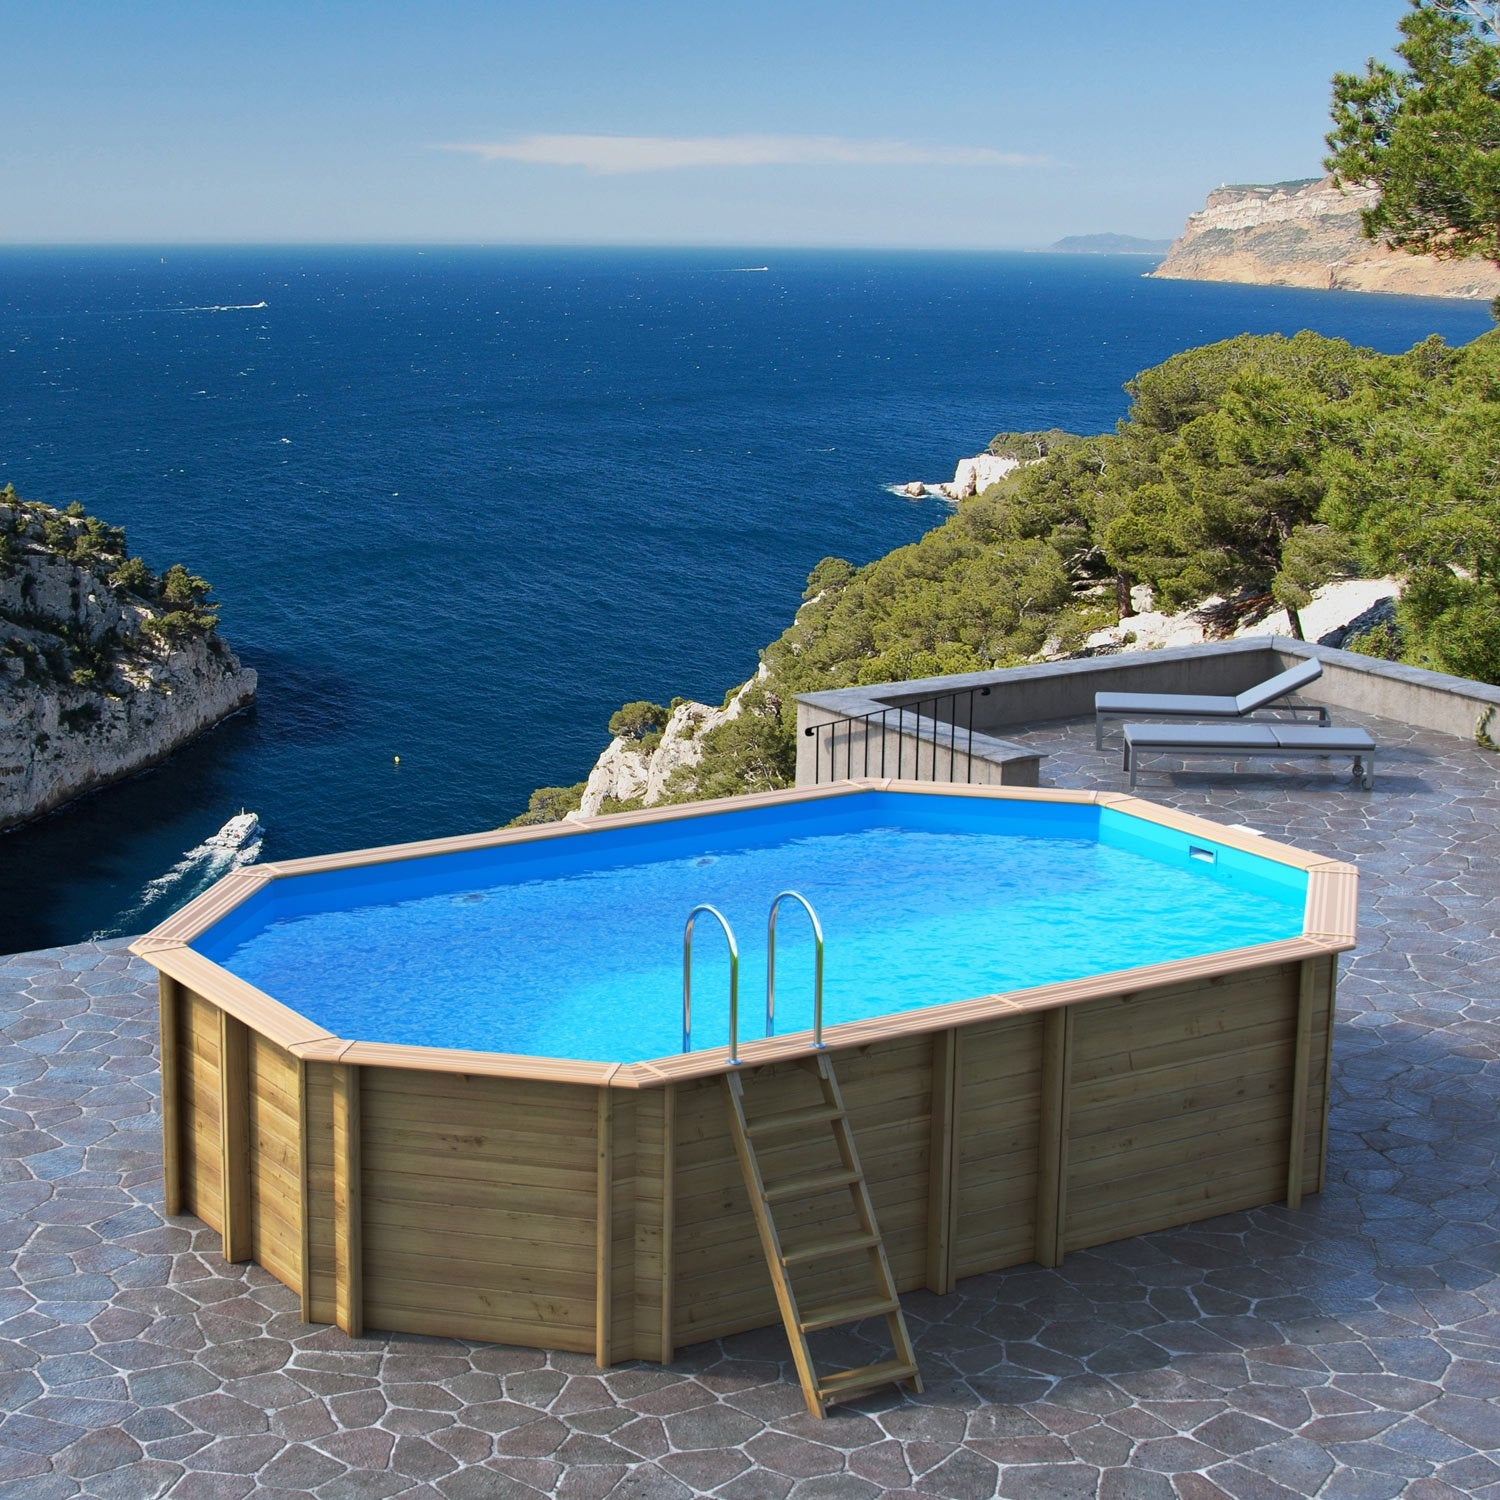 Piscine hors sol bois odyssea proswell by procopi l 6 4 x for Piscine hors sol enterrable